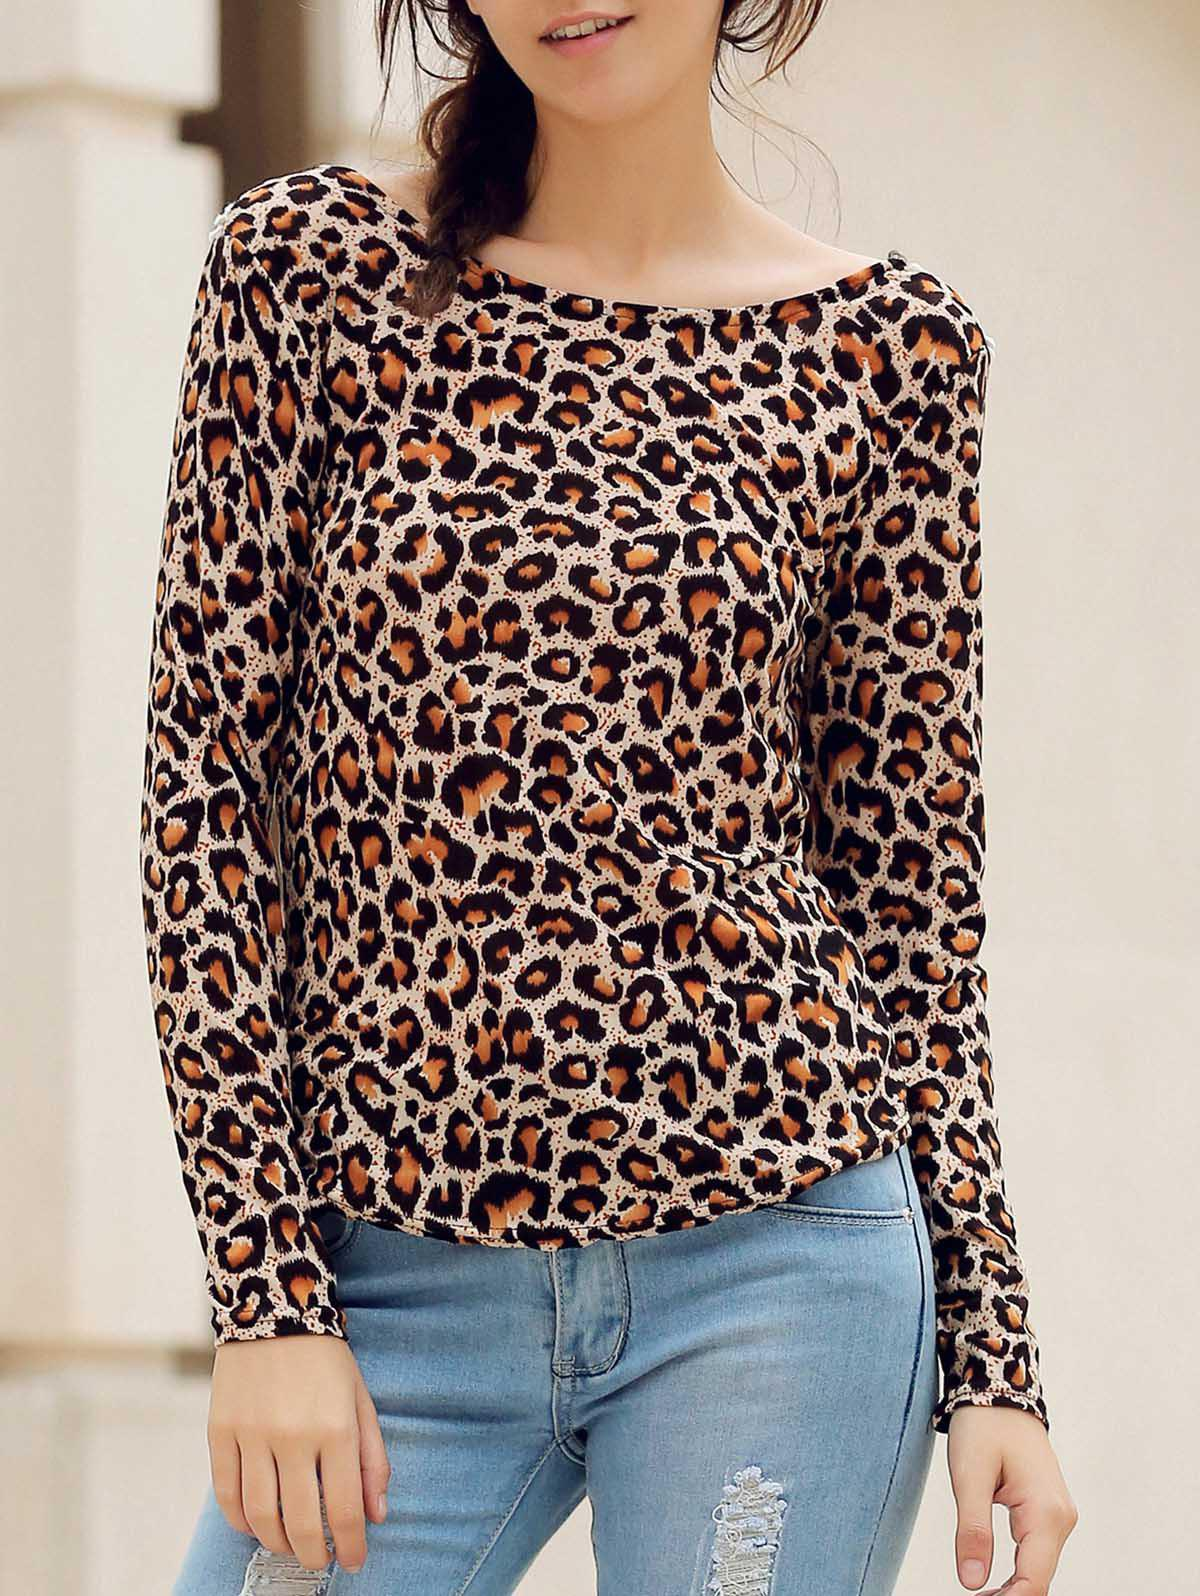 Stylish Round Neck Long Sleeve Backless Leopard Print Women's T-Shirt - S LEOPARD